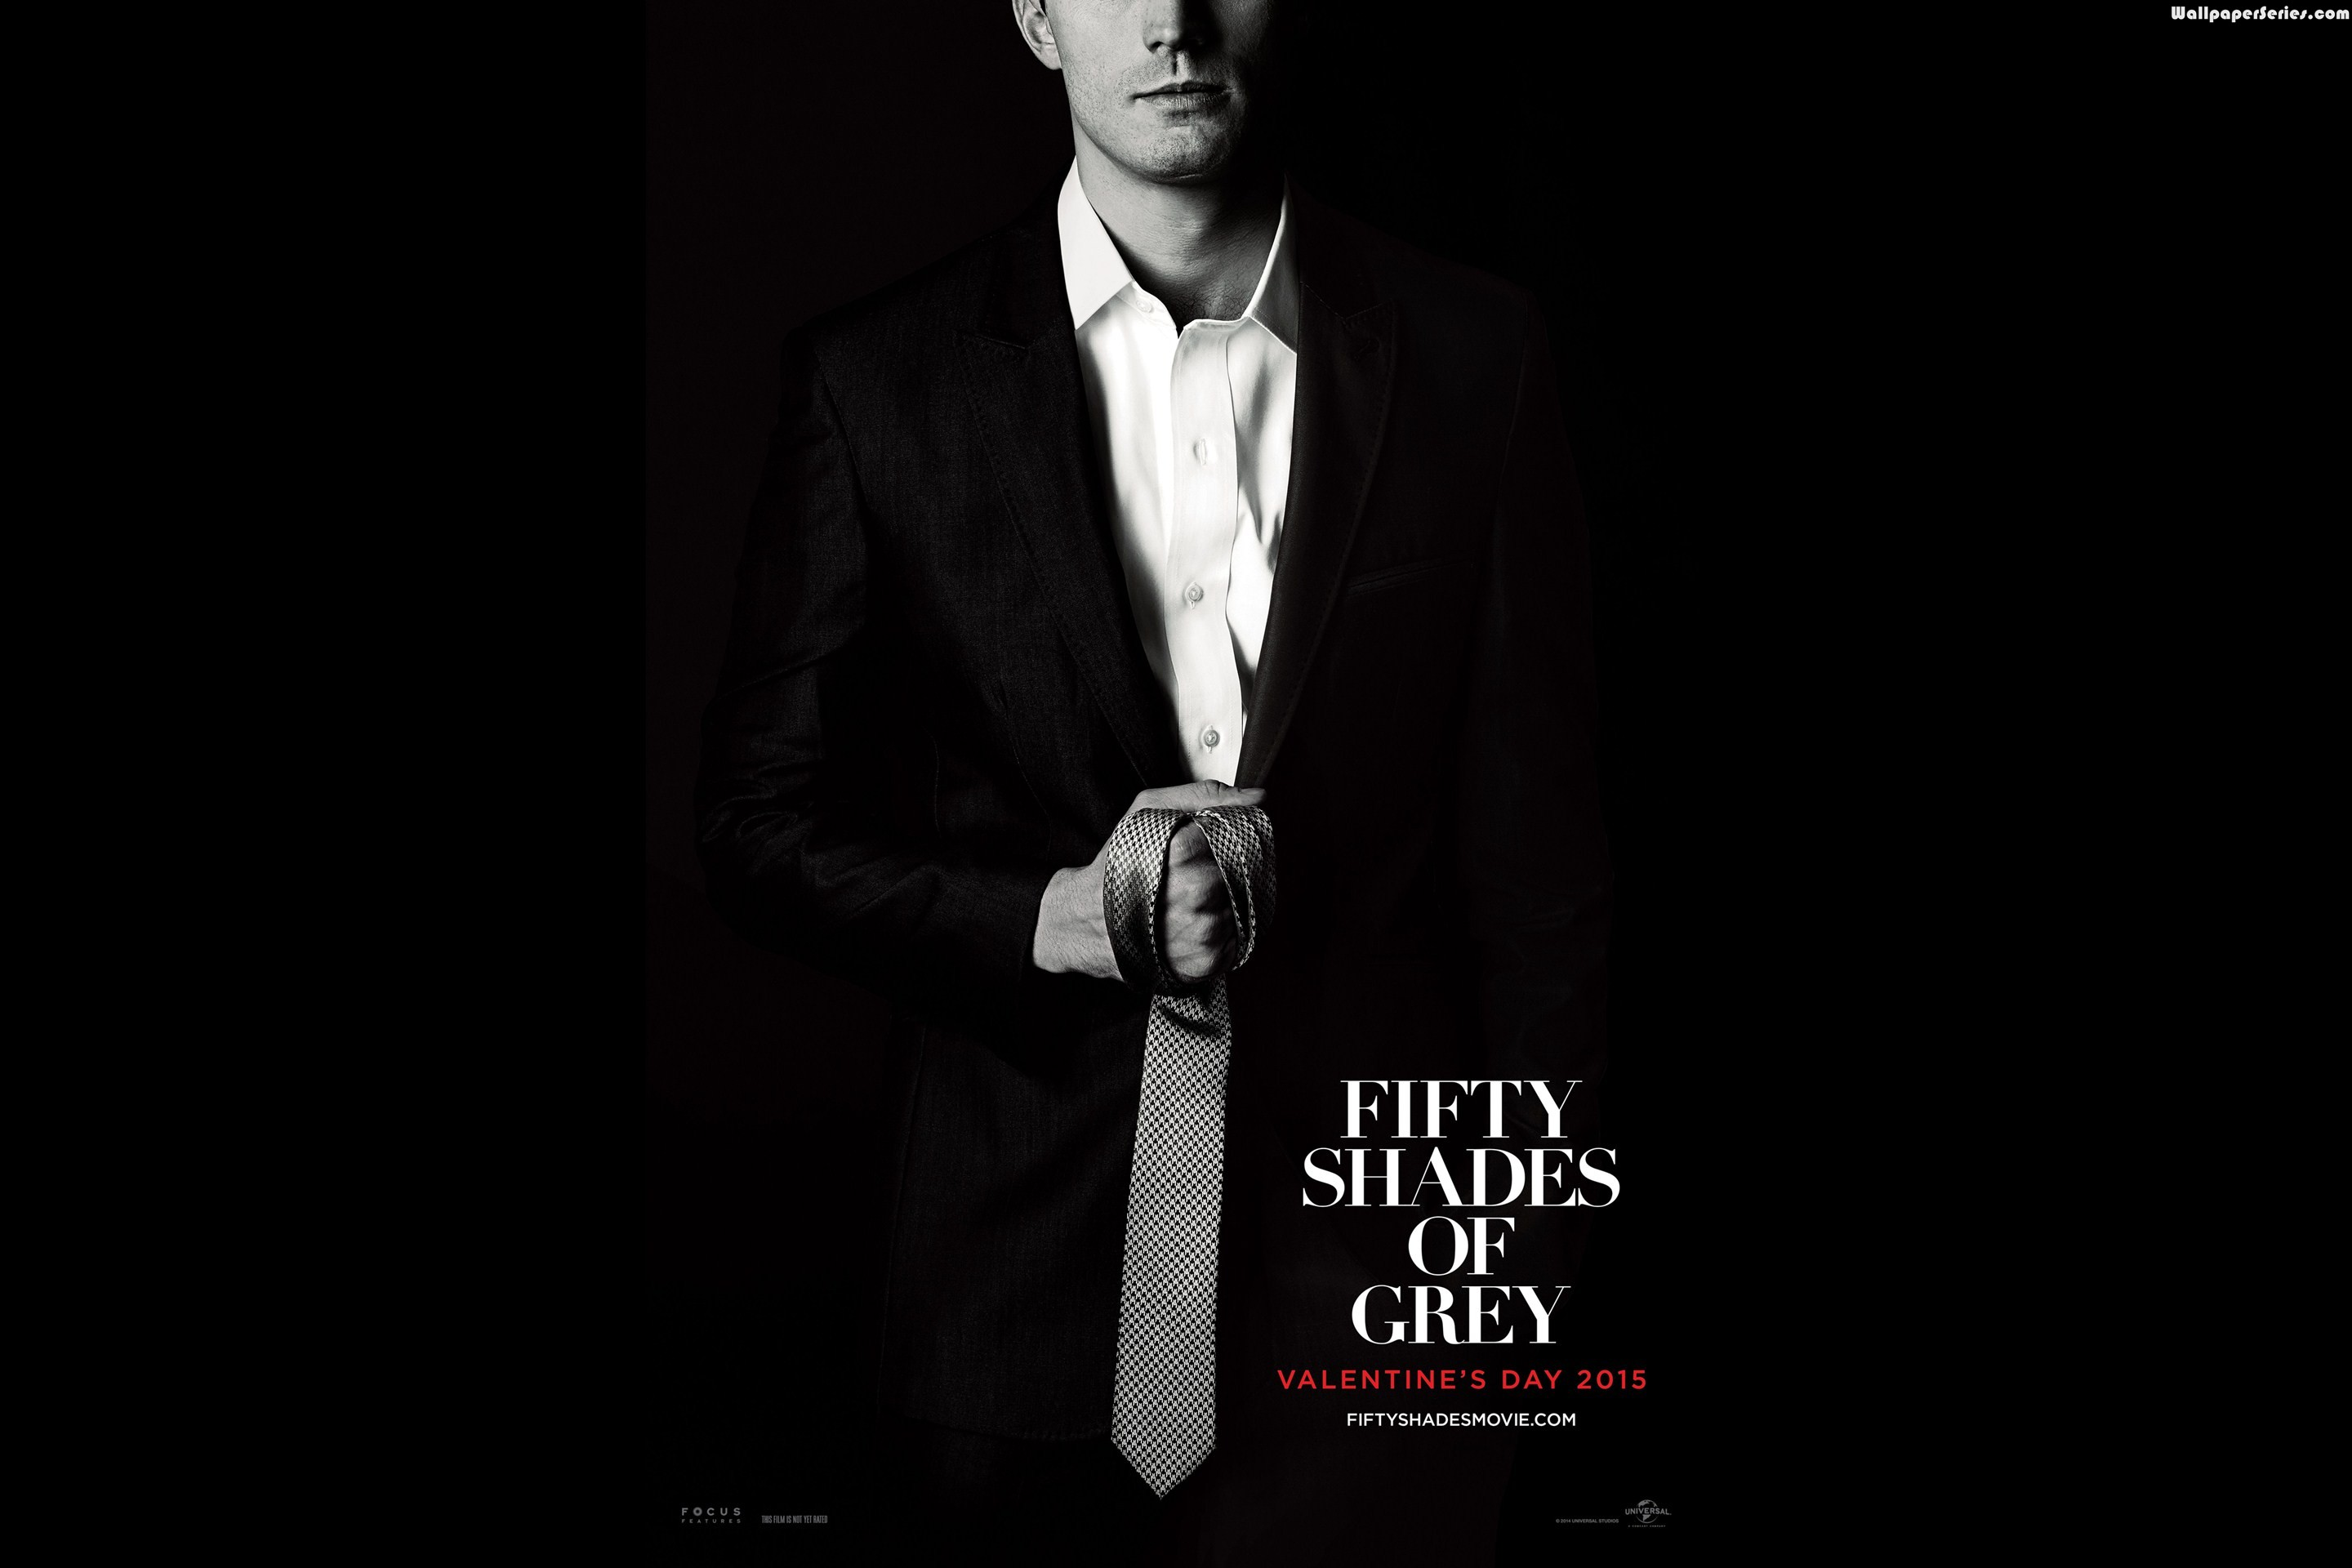 Fifty shades of grey wallpaper wallpapersafari for Fifthy shade of grey